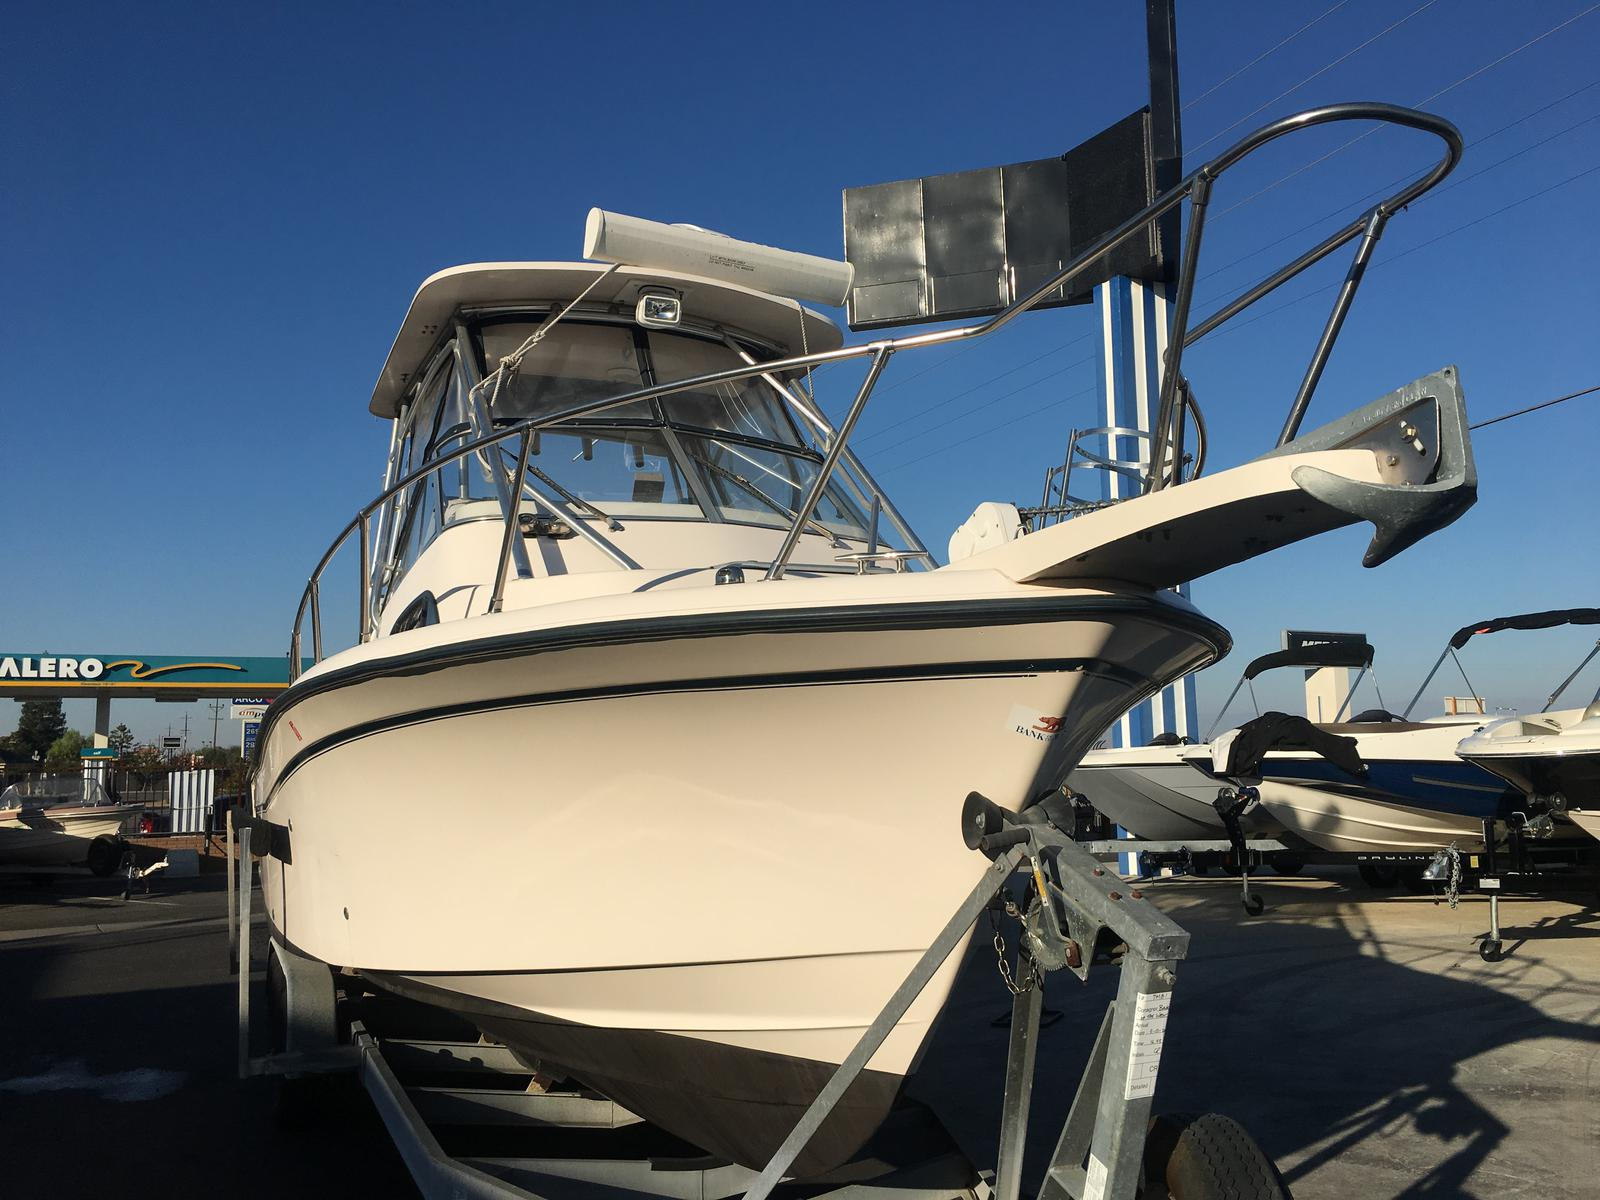 Grady-White 282 Sailfish Twin Yamaha 225hp